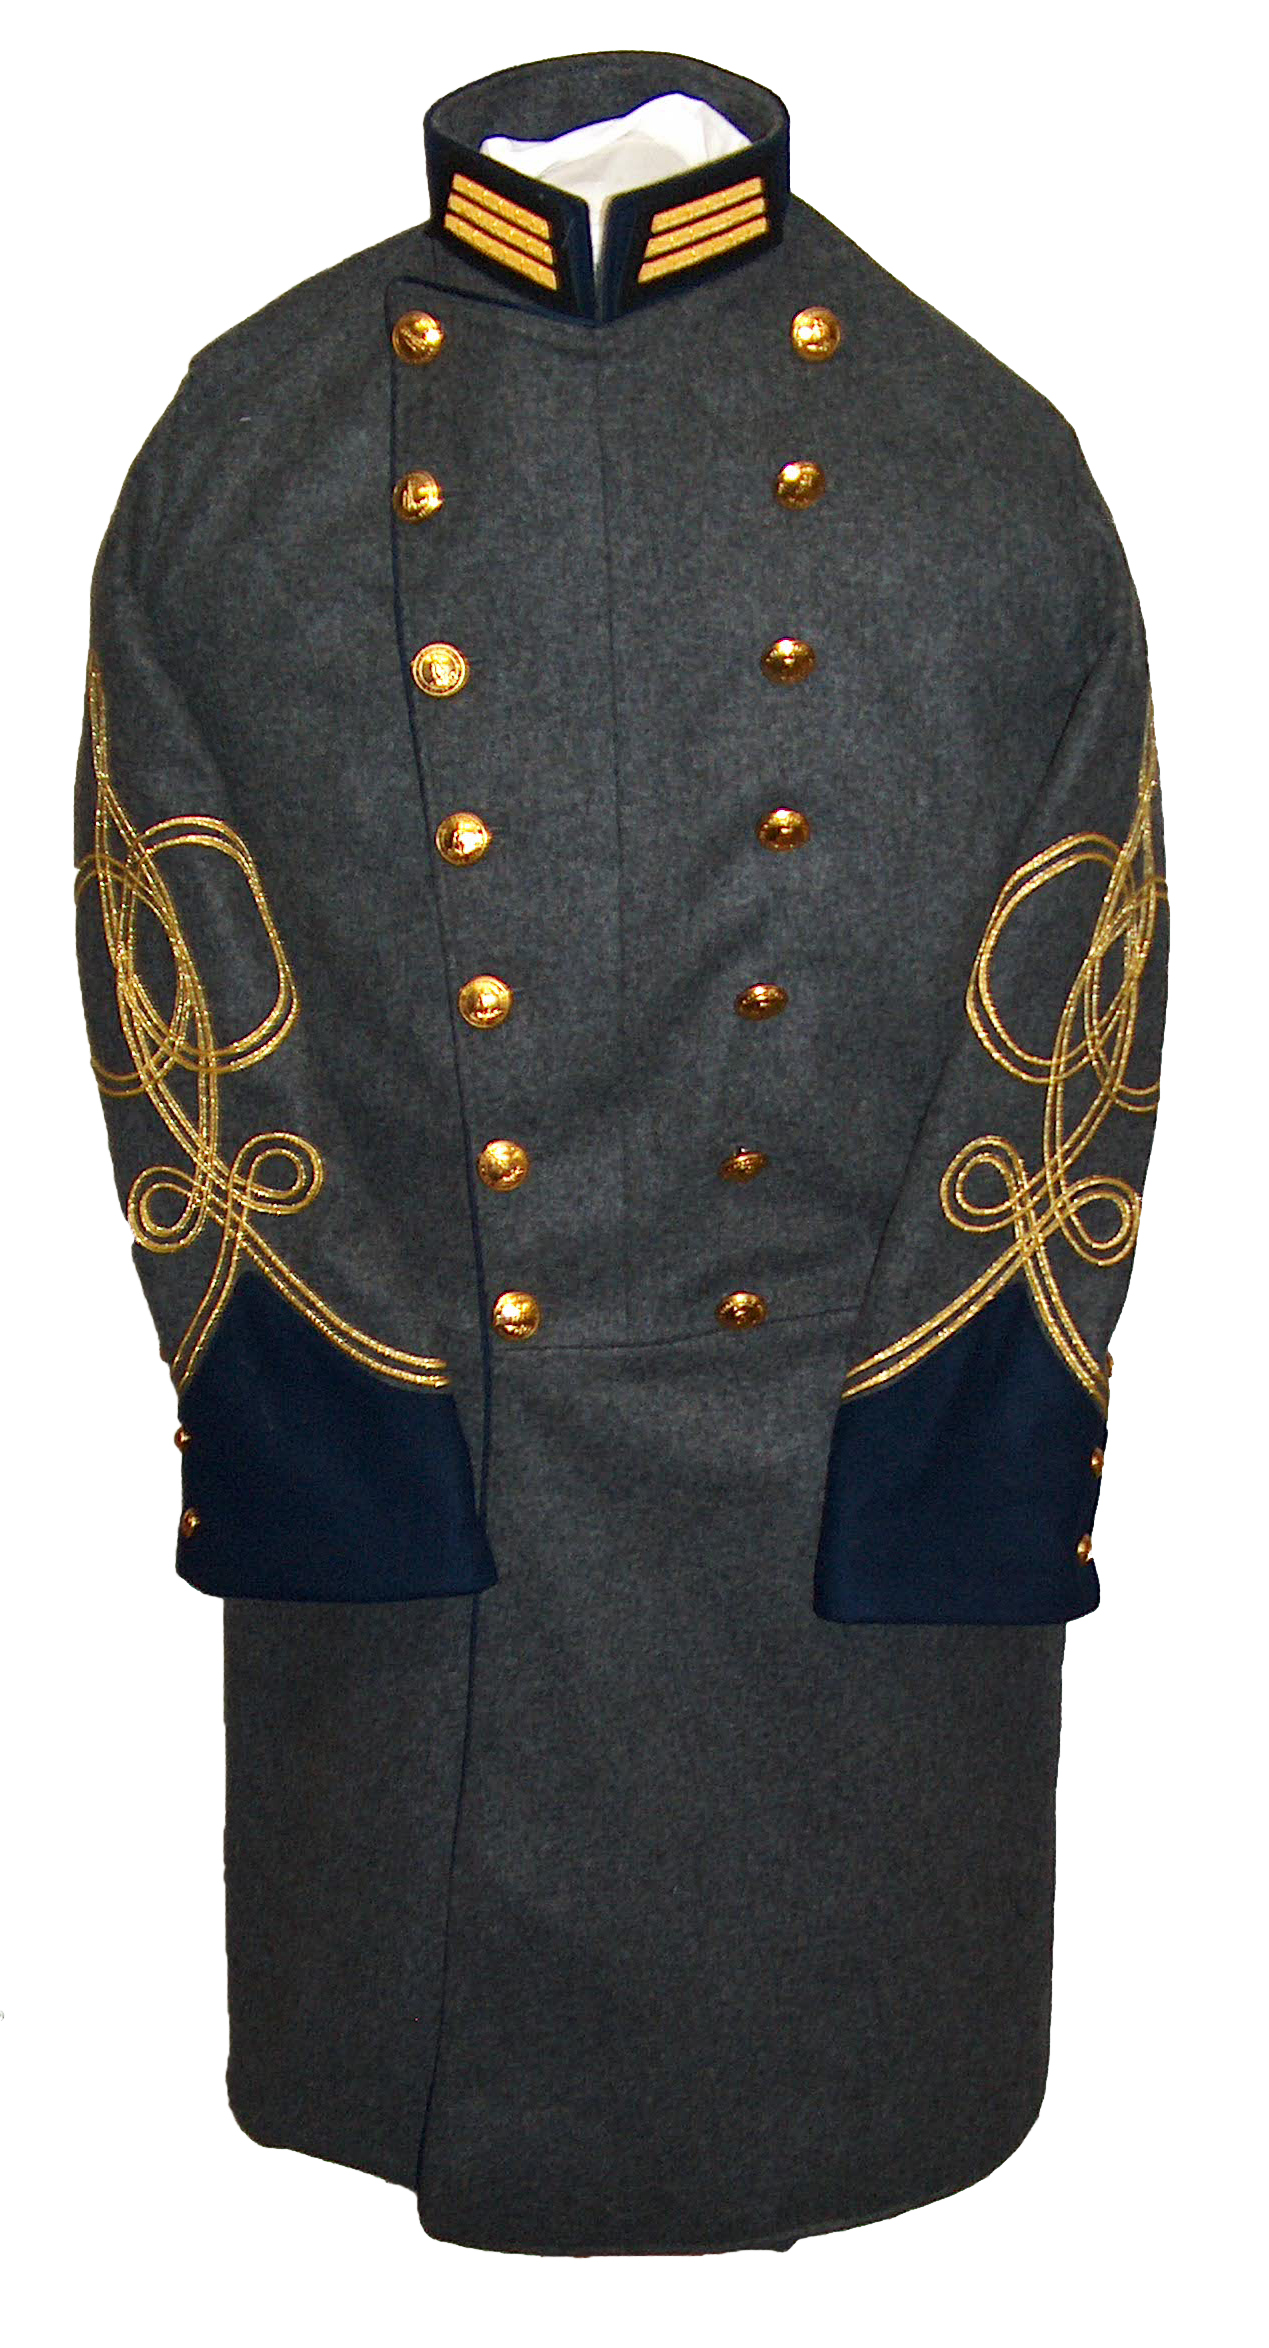 Civil War Clothing and Reenactment Supplies